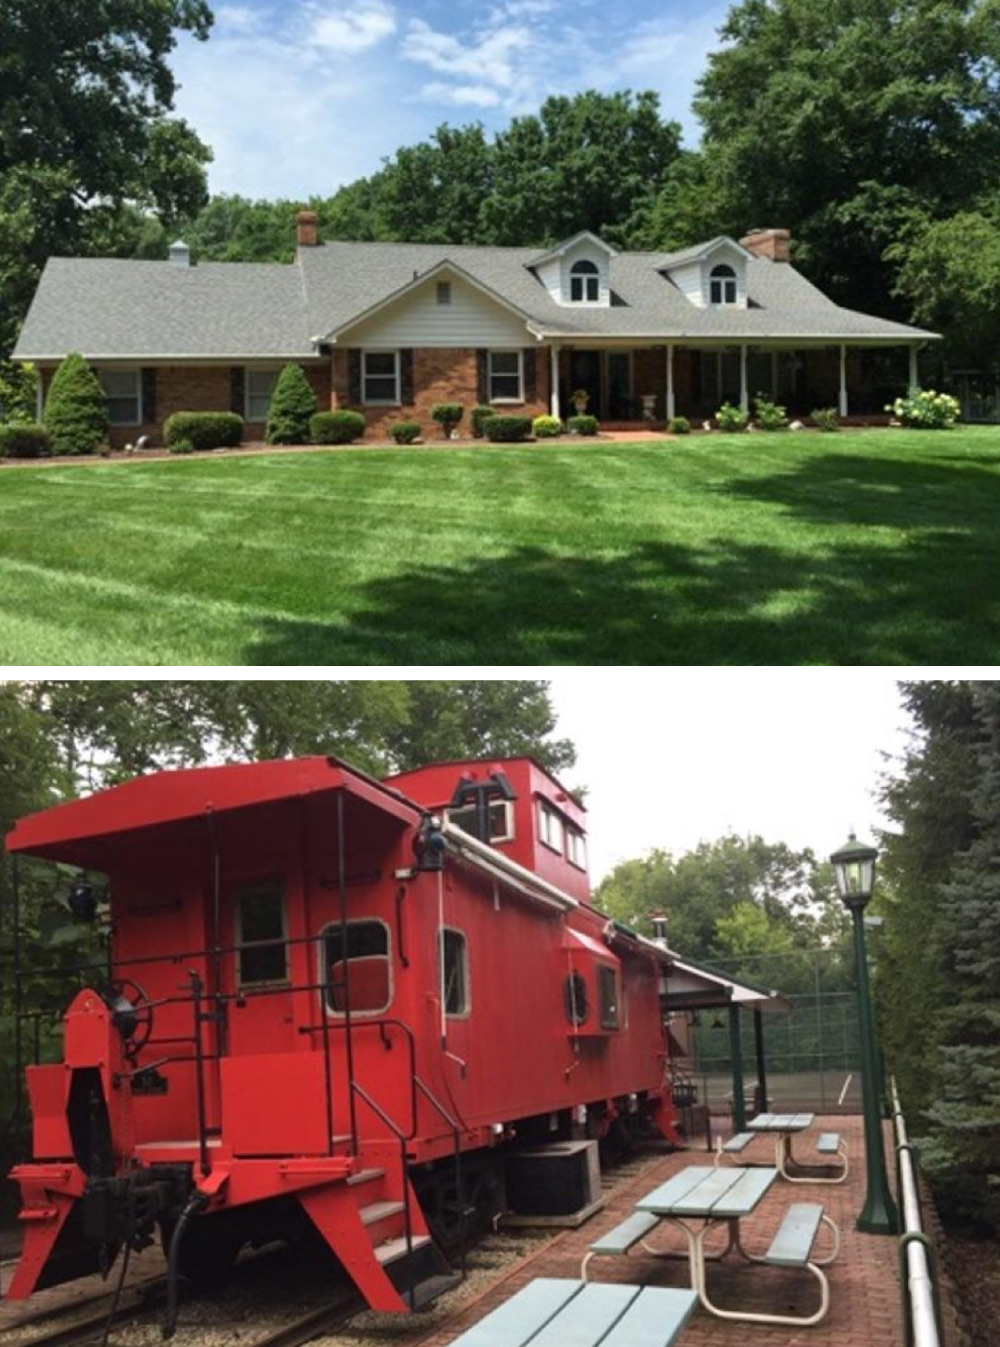 8 Homes With Converted Train Cars For Sale Life At Home